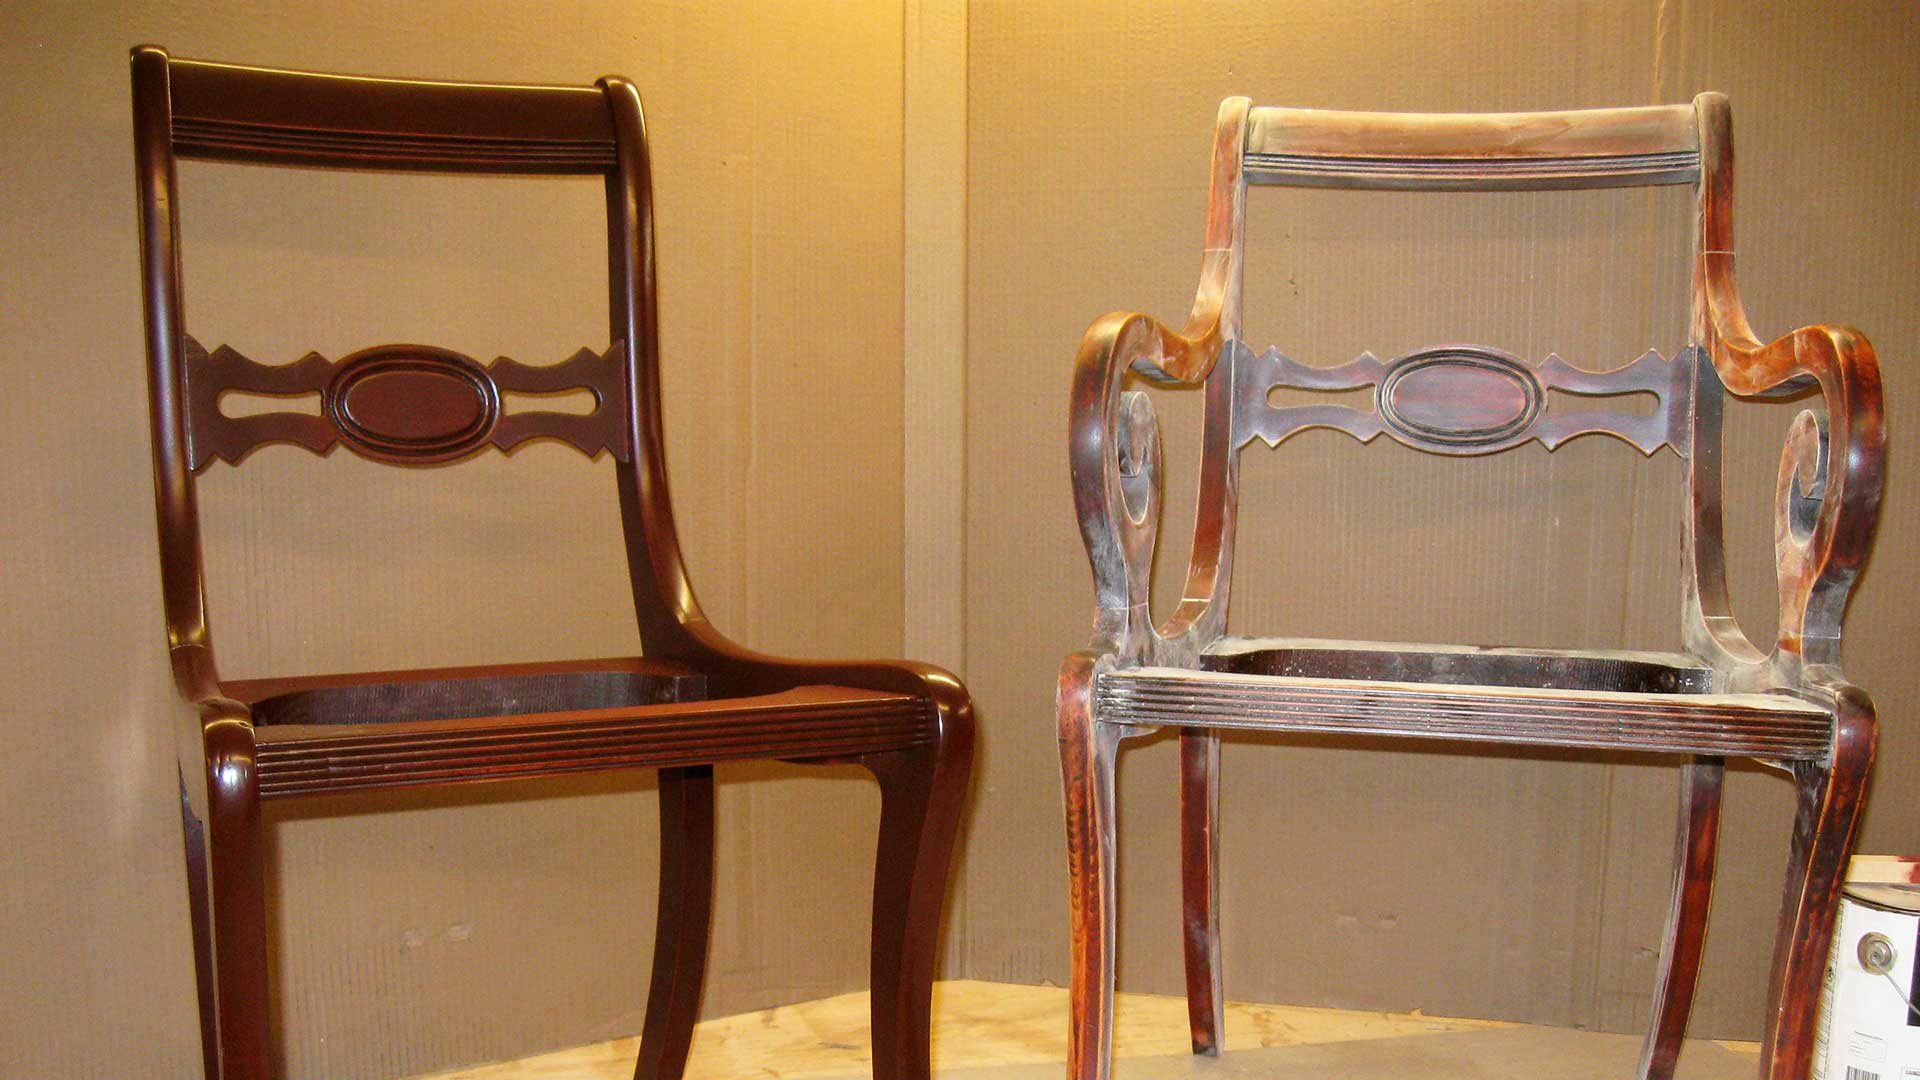 Furniture Restoration and Repair in NH, ME  Cormack Construction